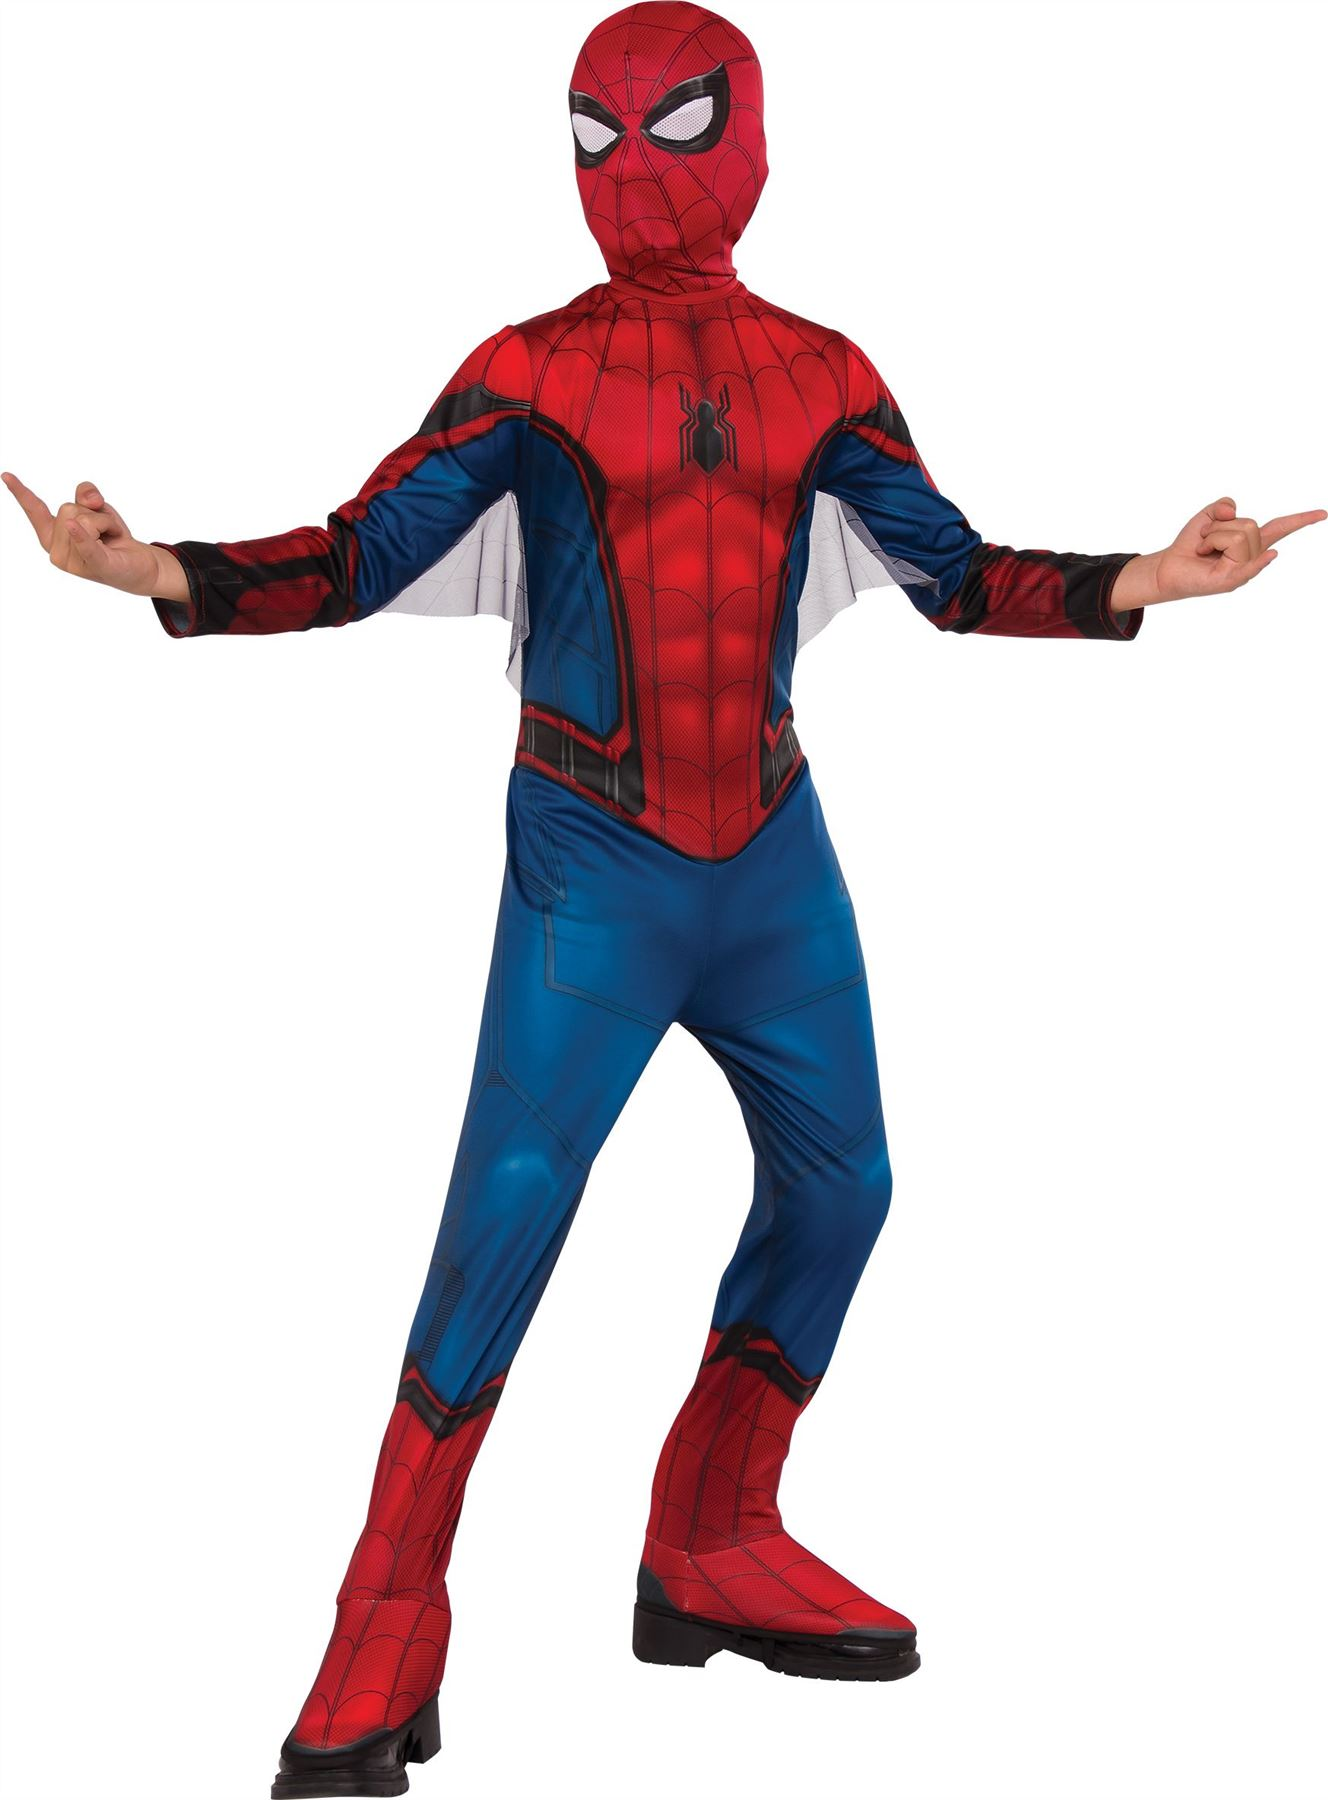 Check out our great selection of Spider-man costumes. Including various different sizes and styles for an adult or kids spider-man costume. downloadsolutionspa5tr.gq Each year, hundreds of kids dress up as the wall-crawler for play time, or for Halloween, which keeps Spidey fresh in our minds. © downloadsolutionspa5tr.gq